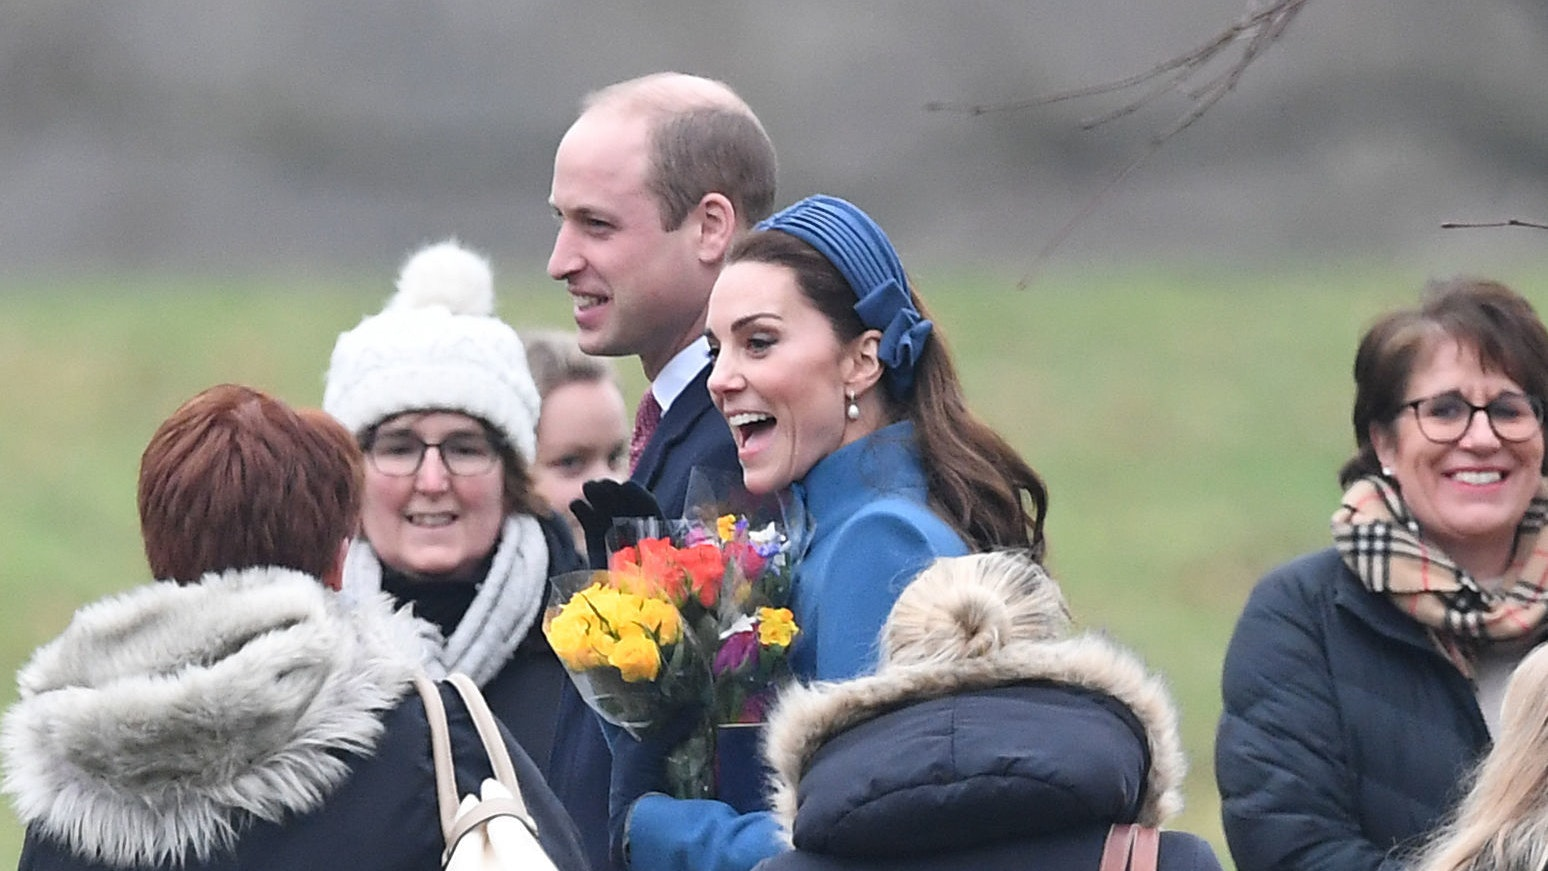 Celebrations as Duchess of Cambridge marks 37th birthday